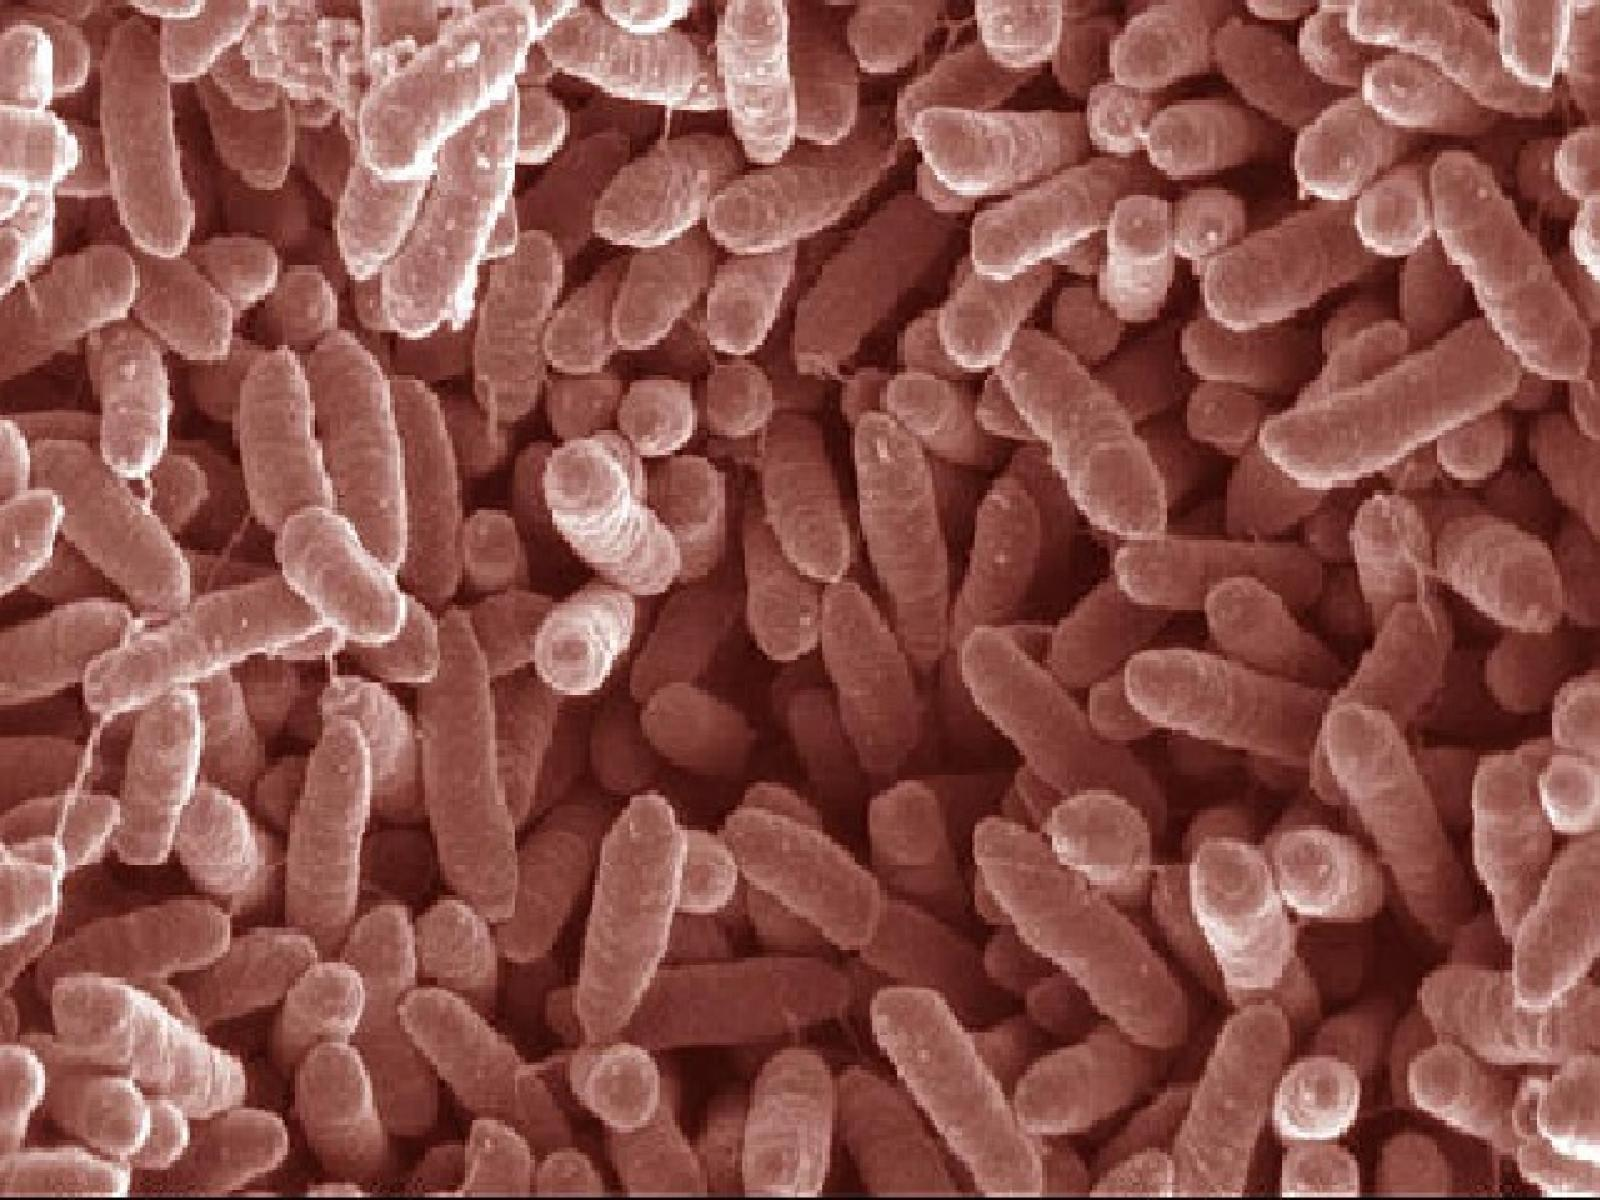 Microscope image of microbes